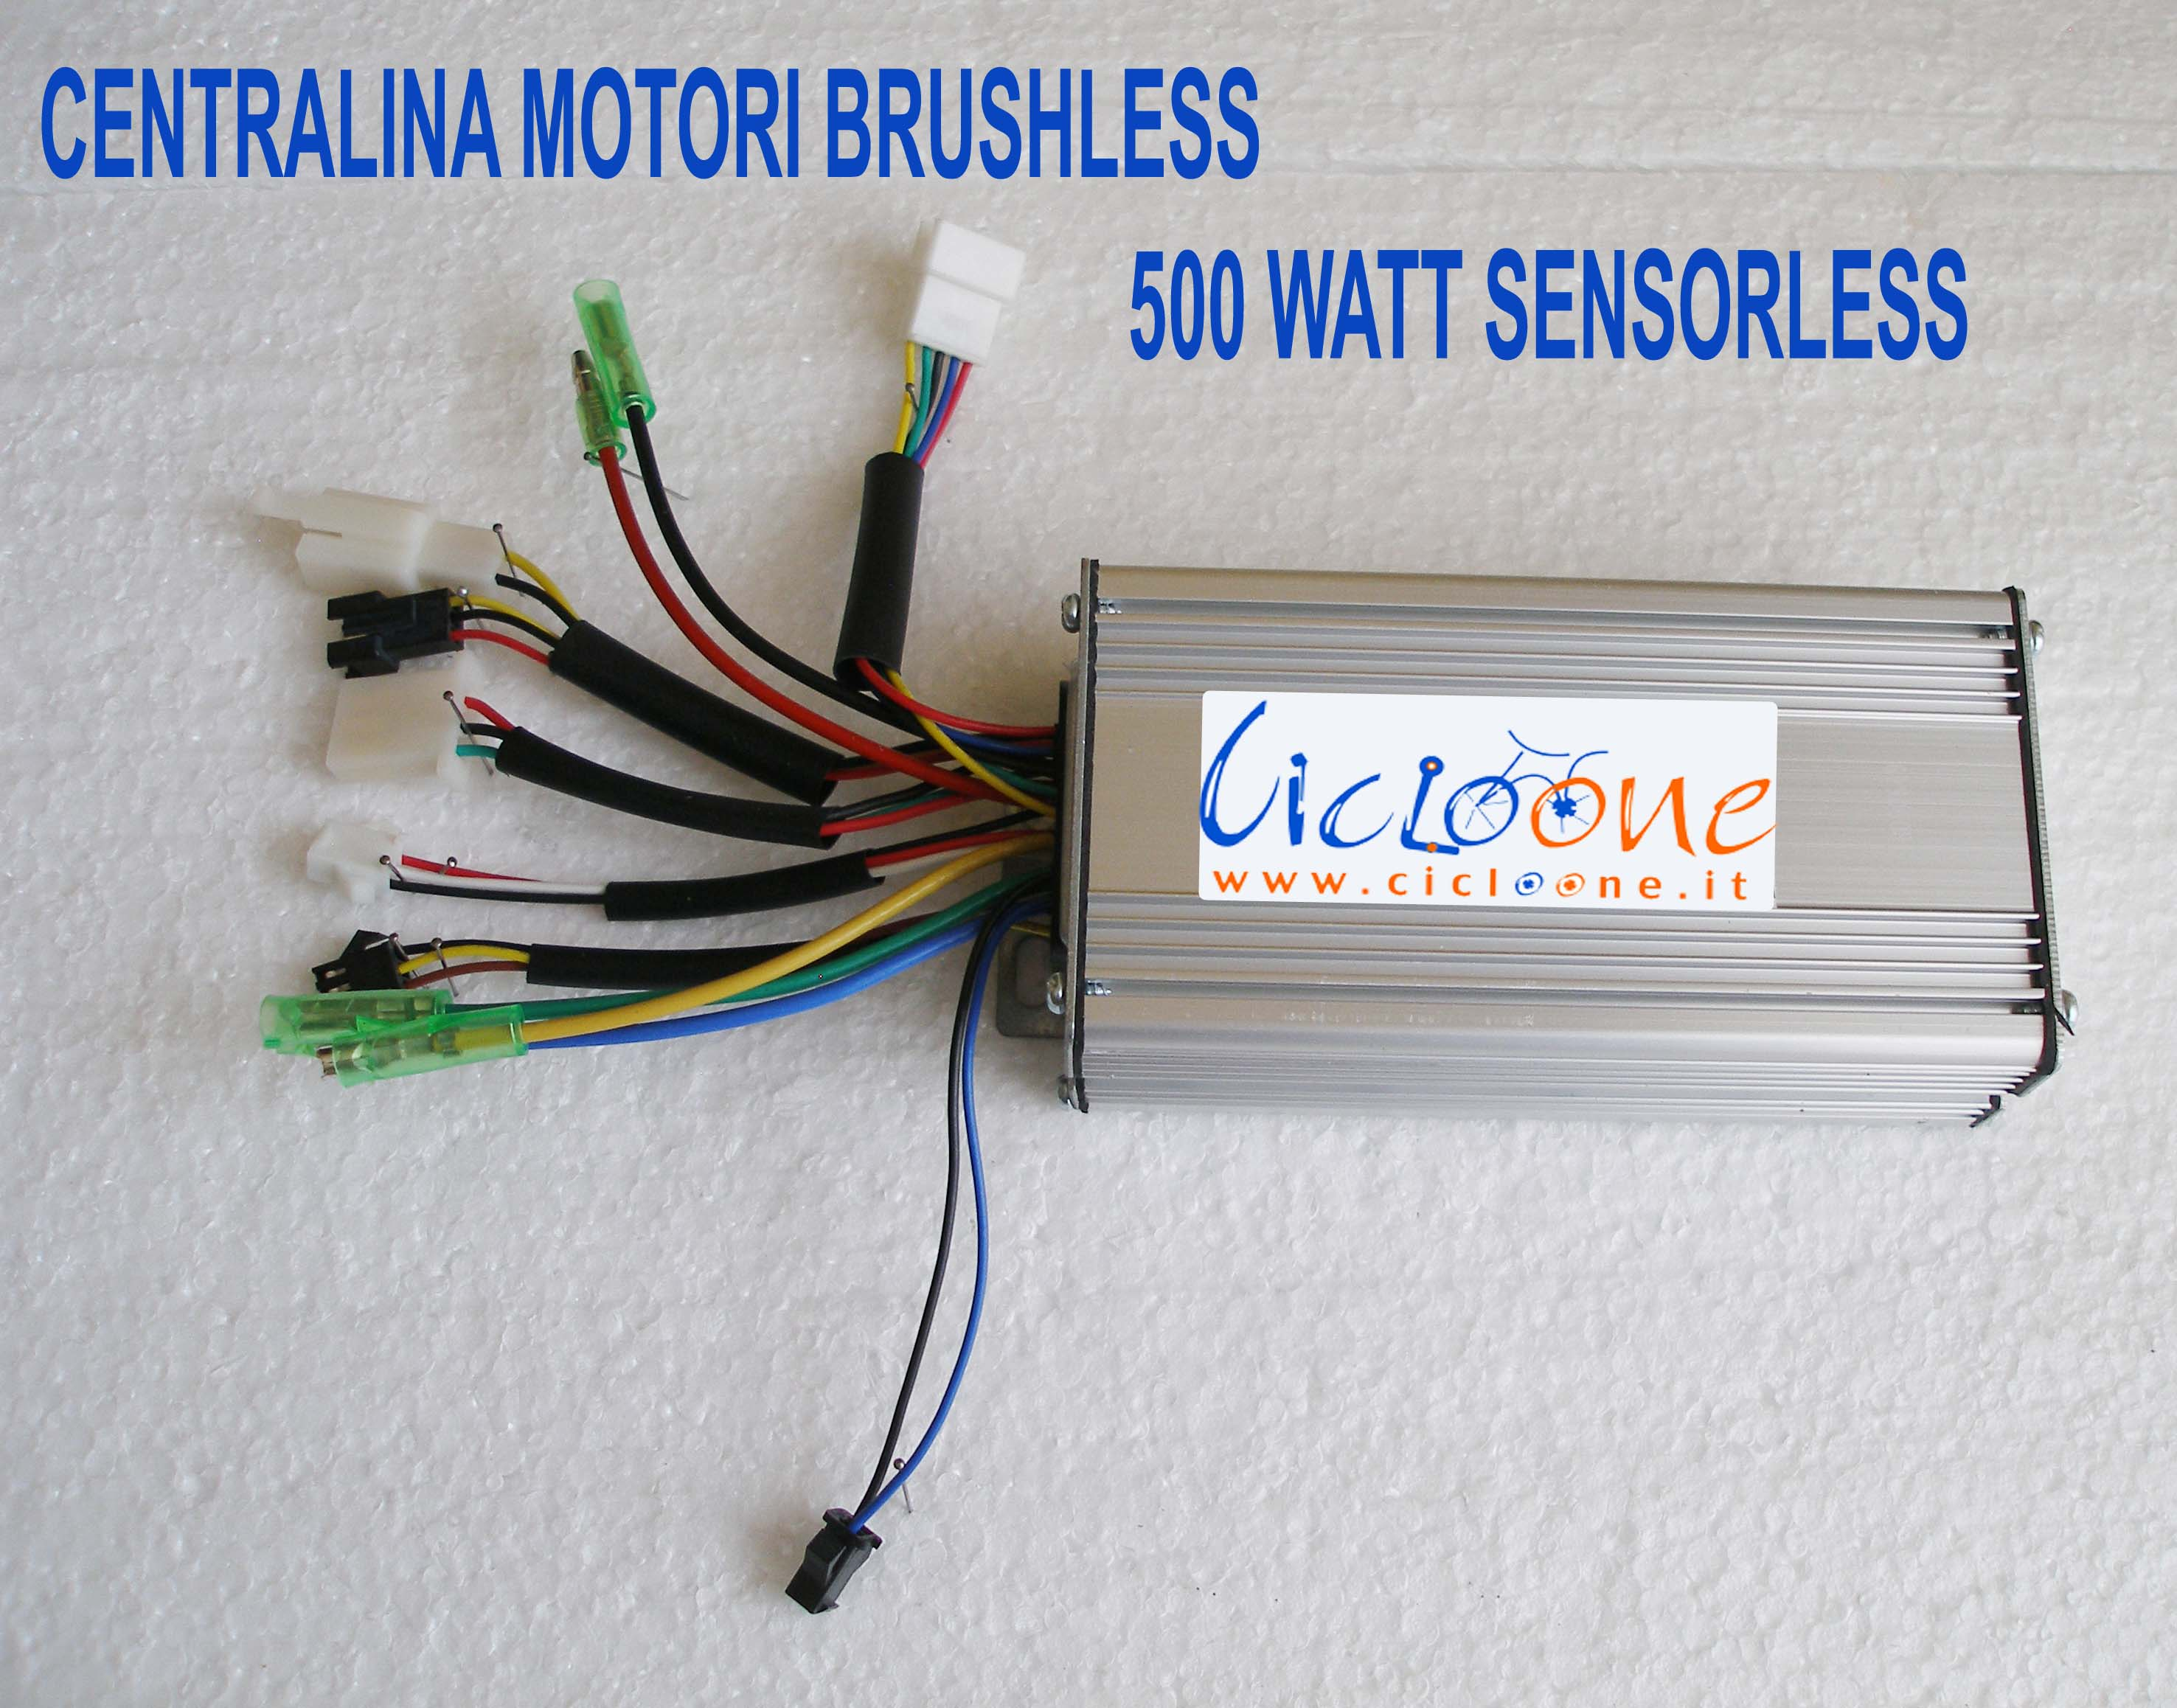 centralina 500 watt motori brushless sensorless